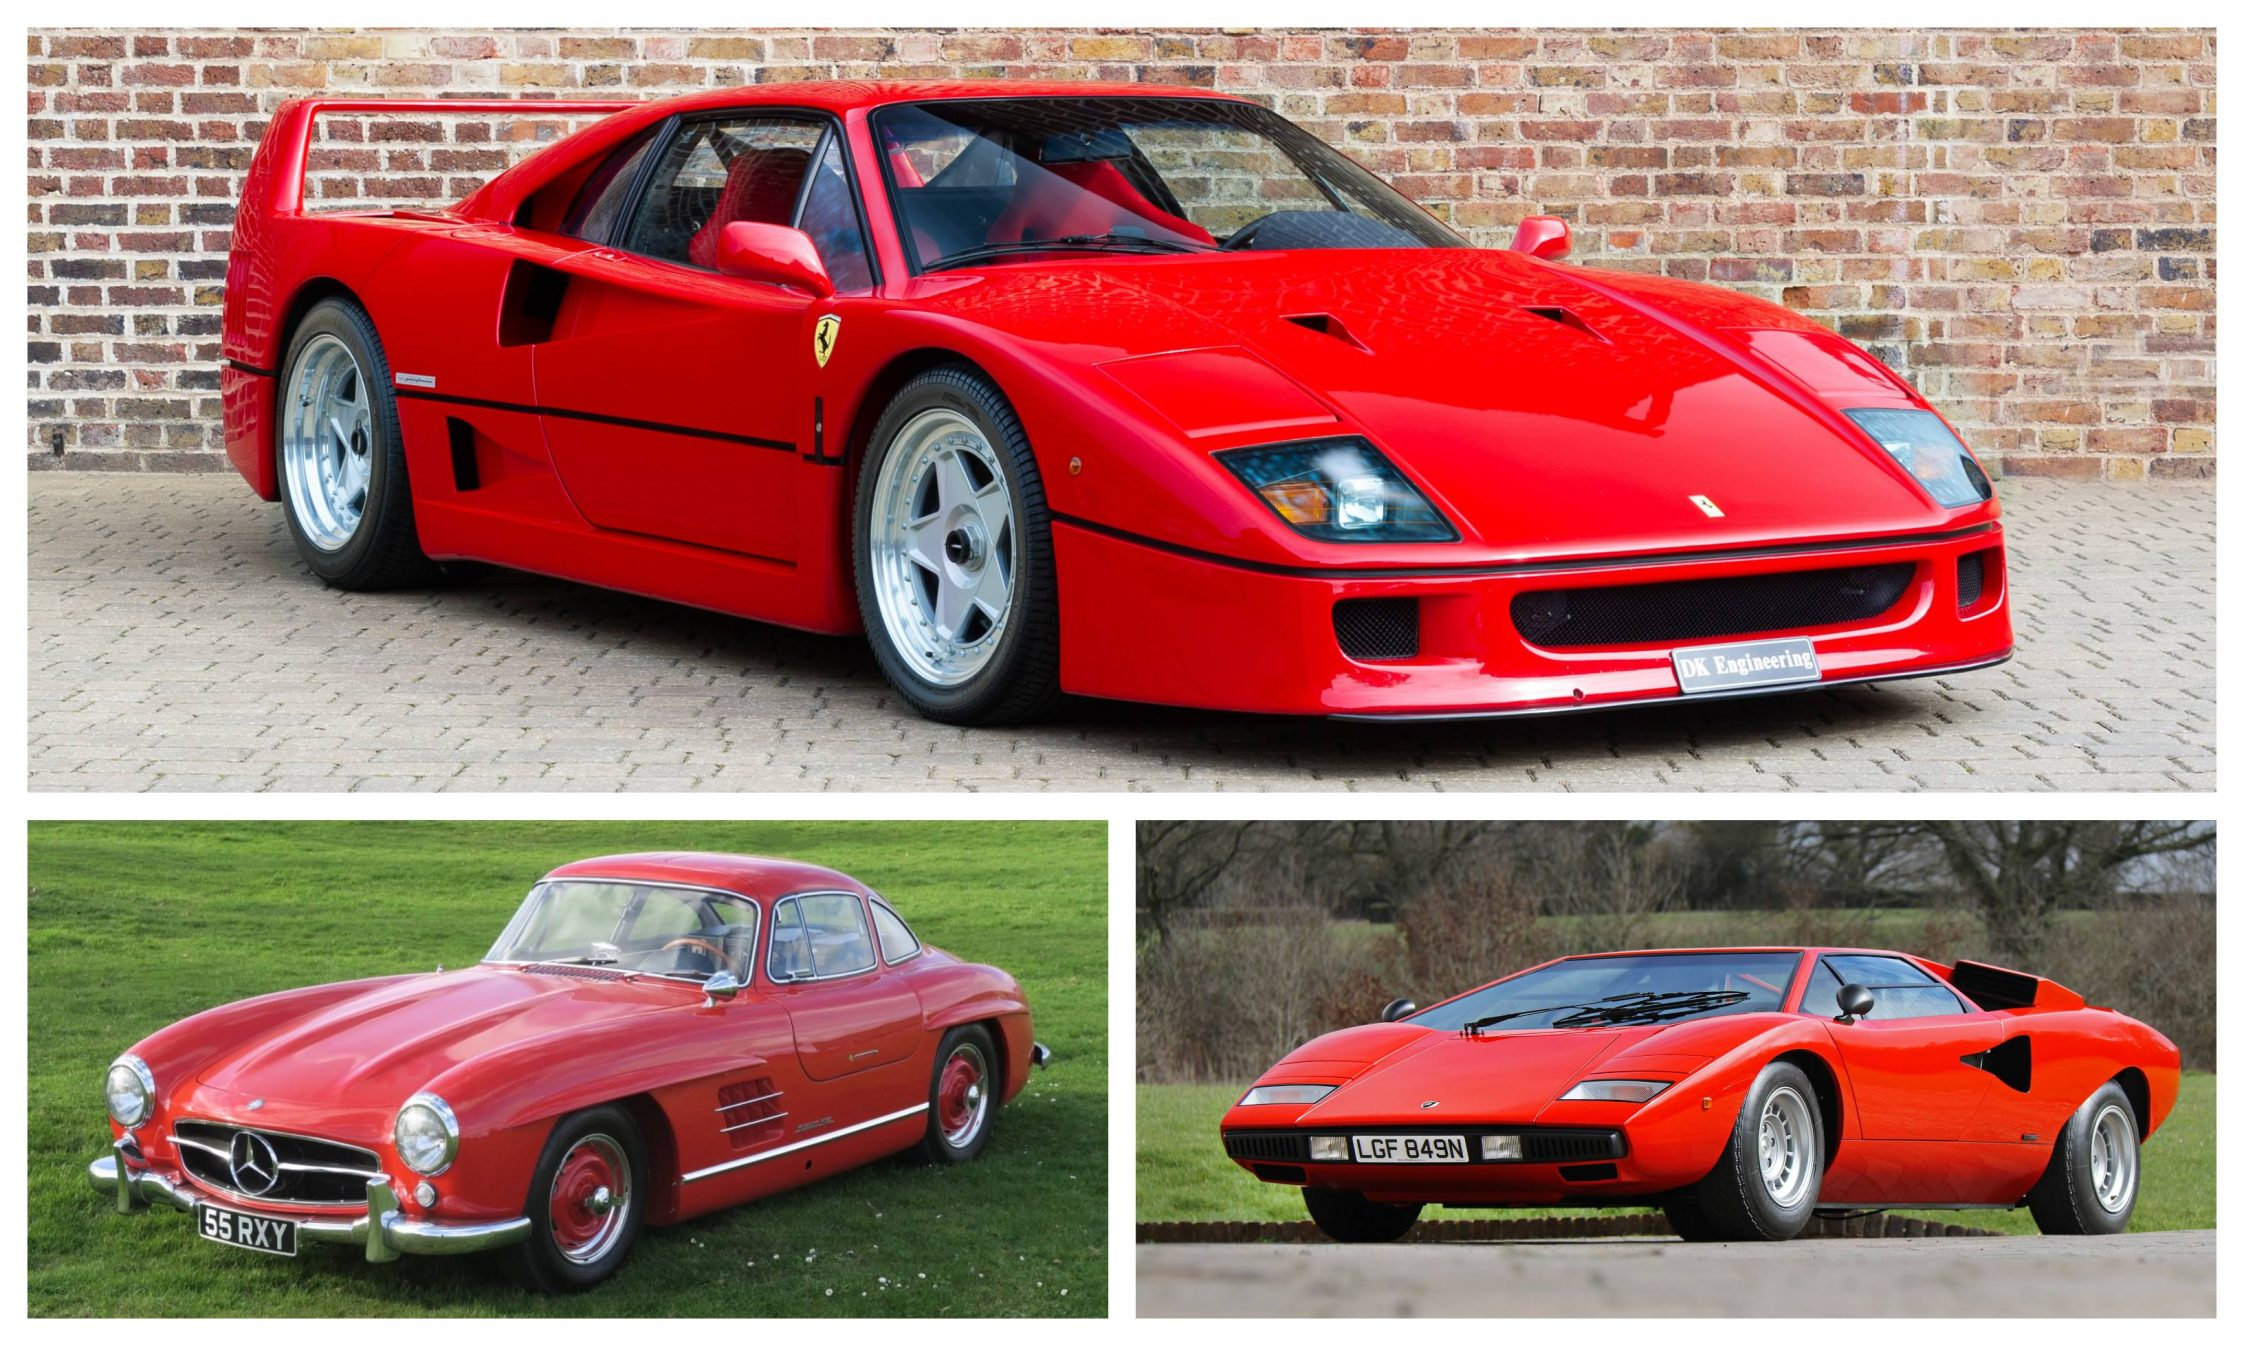 London Concours Reveals 'The Pursuit of Speed' Display